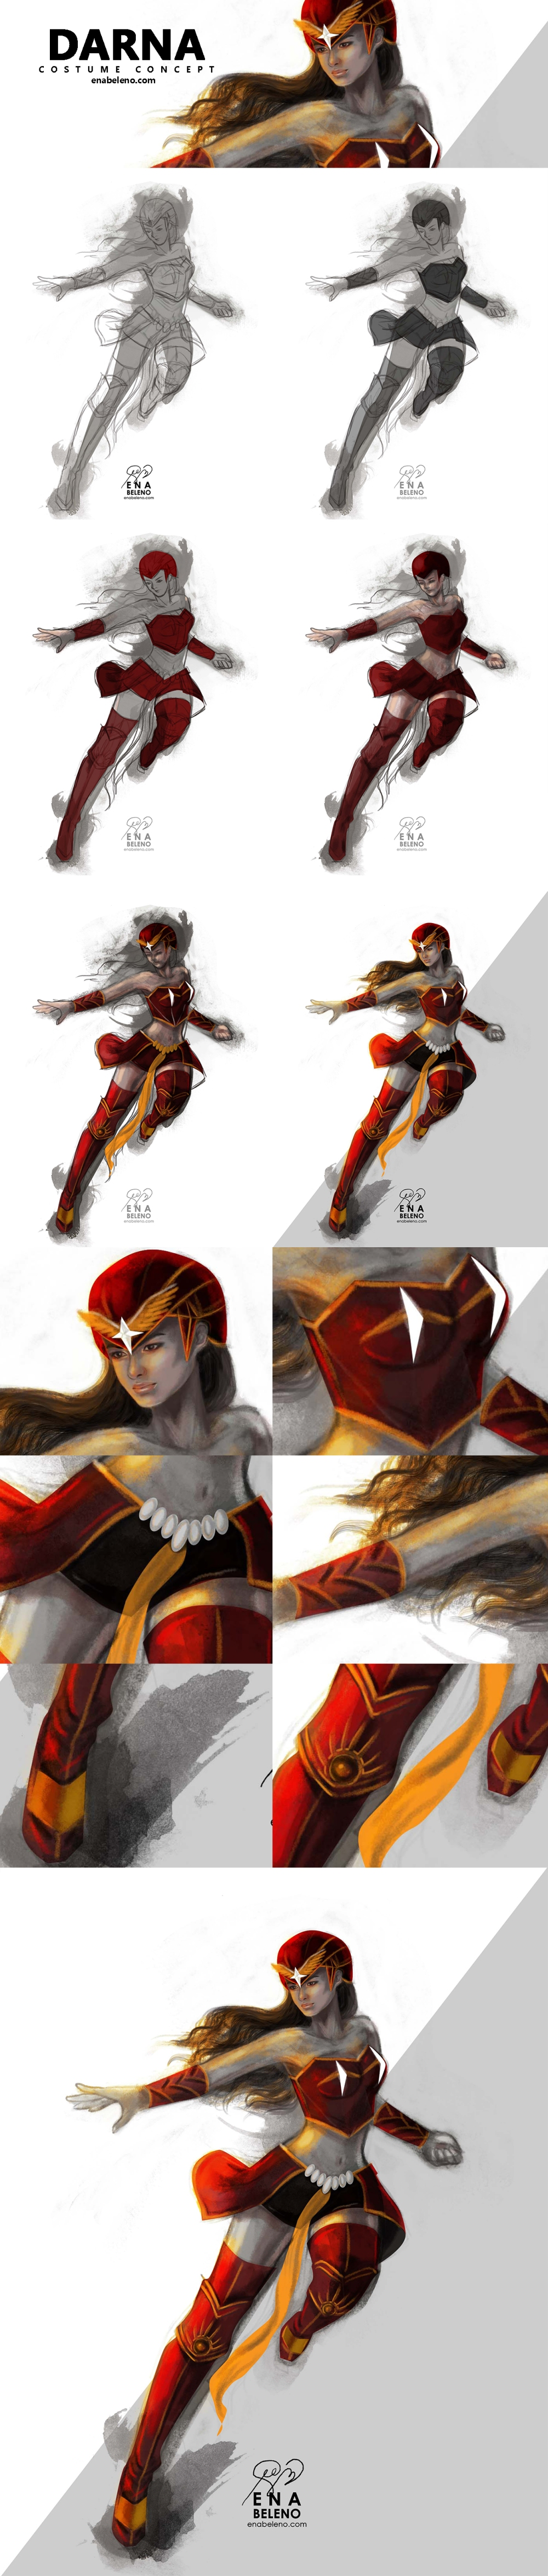 DARNA Costume Concept Digital Painting Tutorial by Ena Beleno